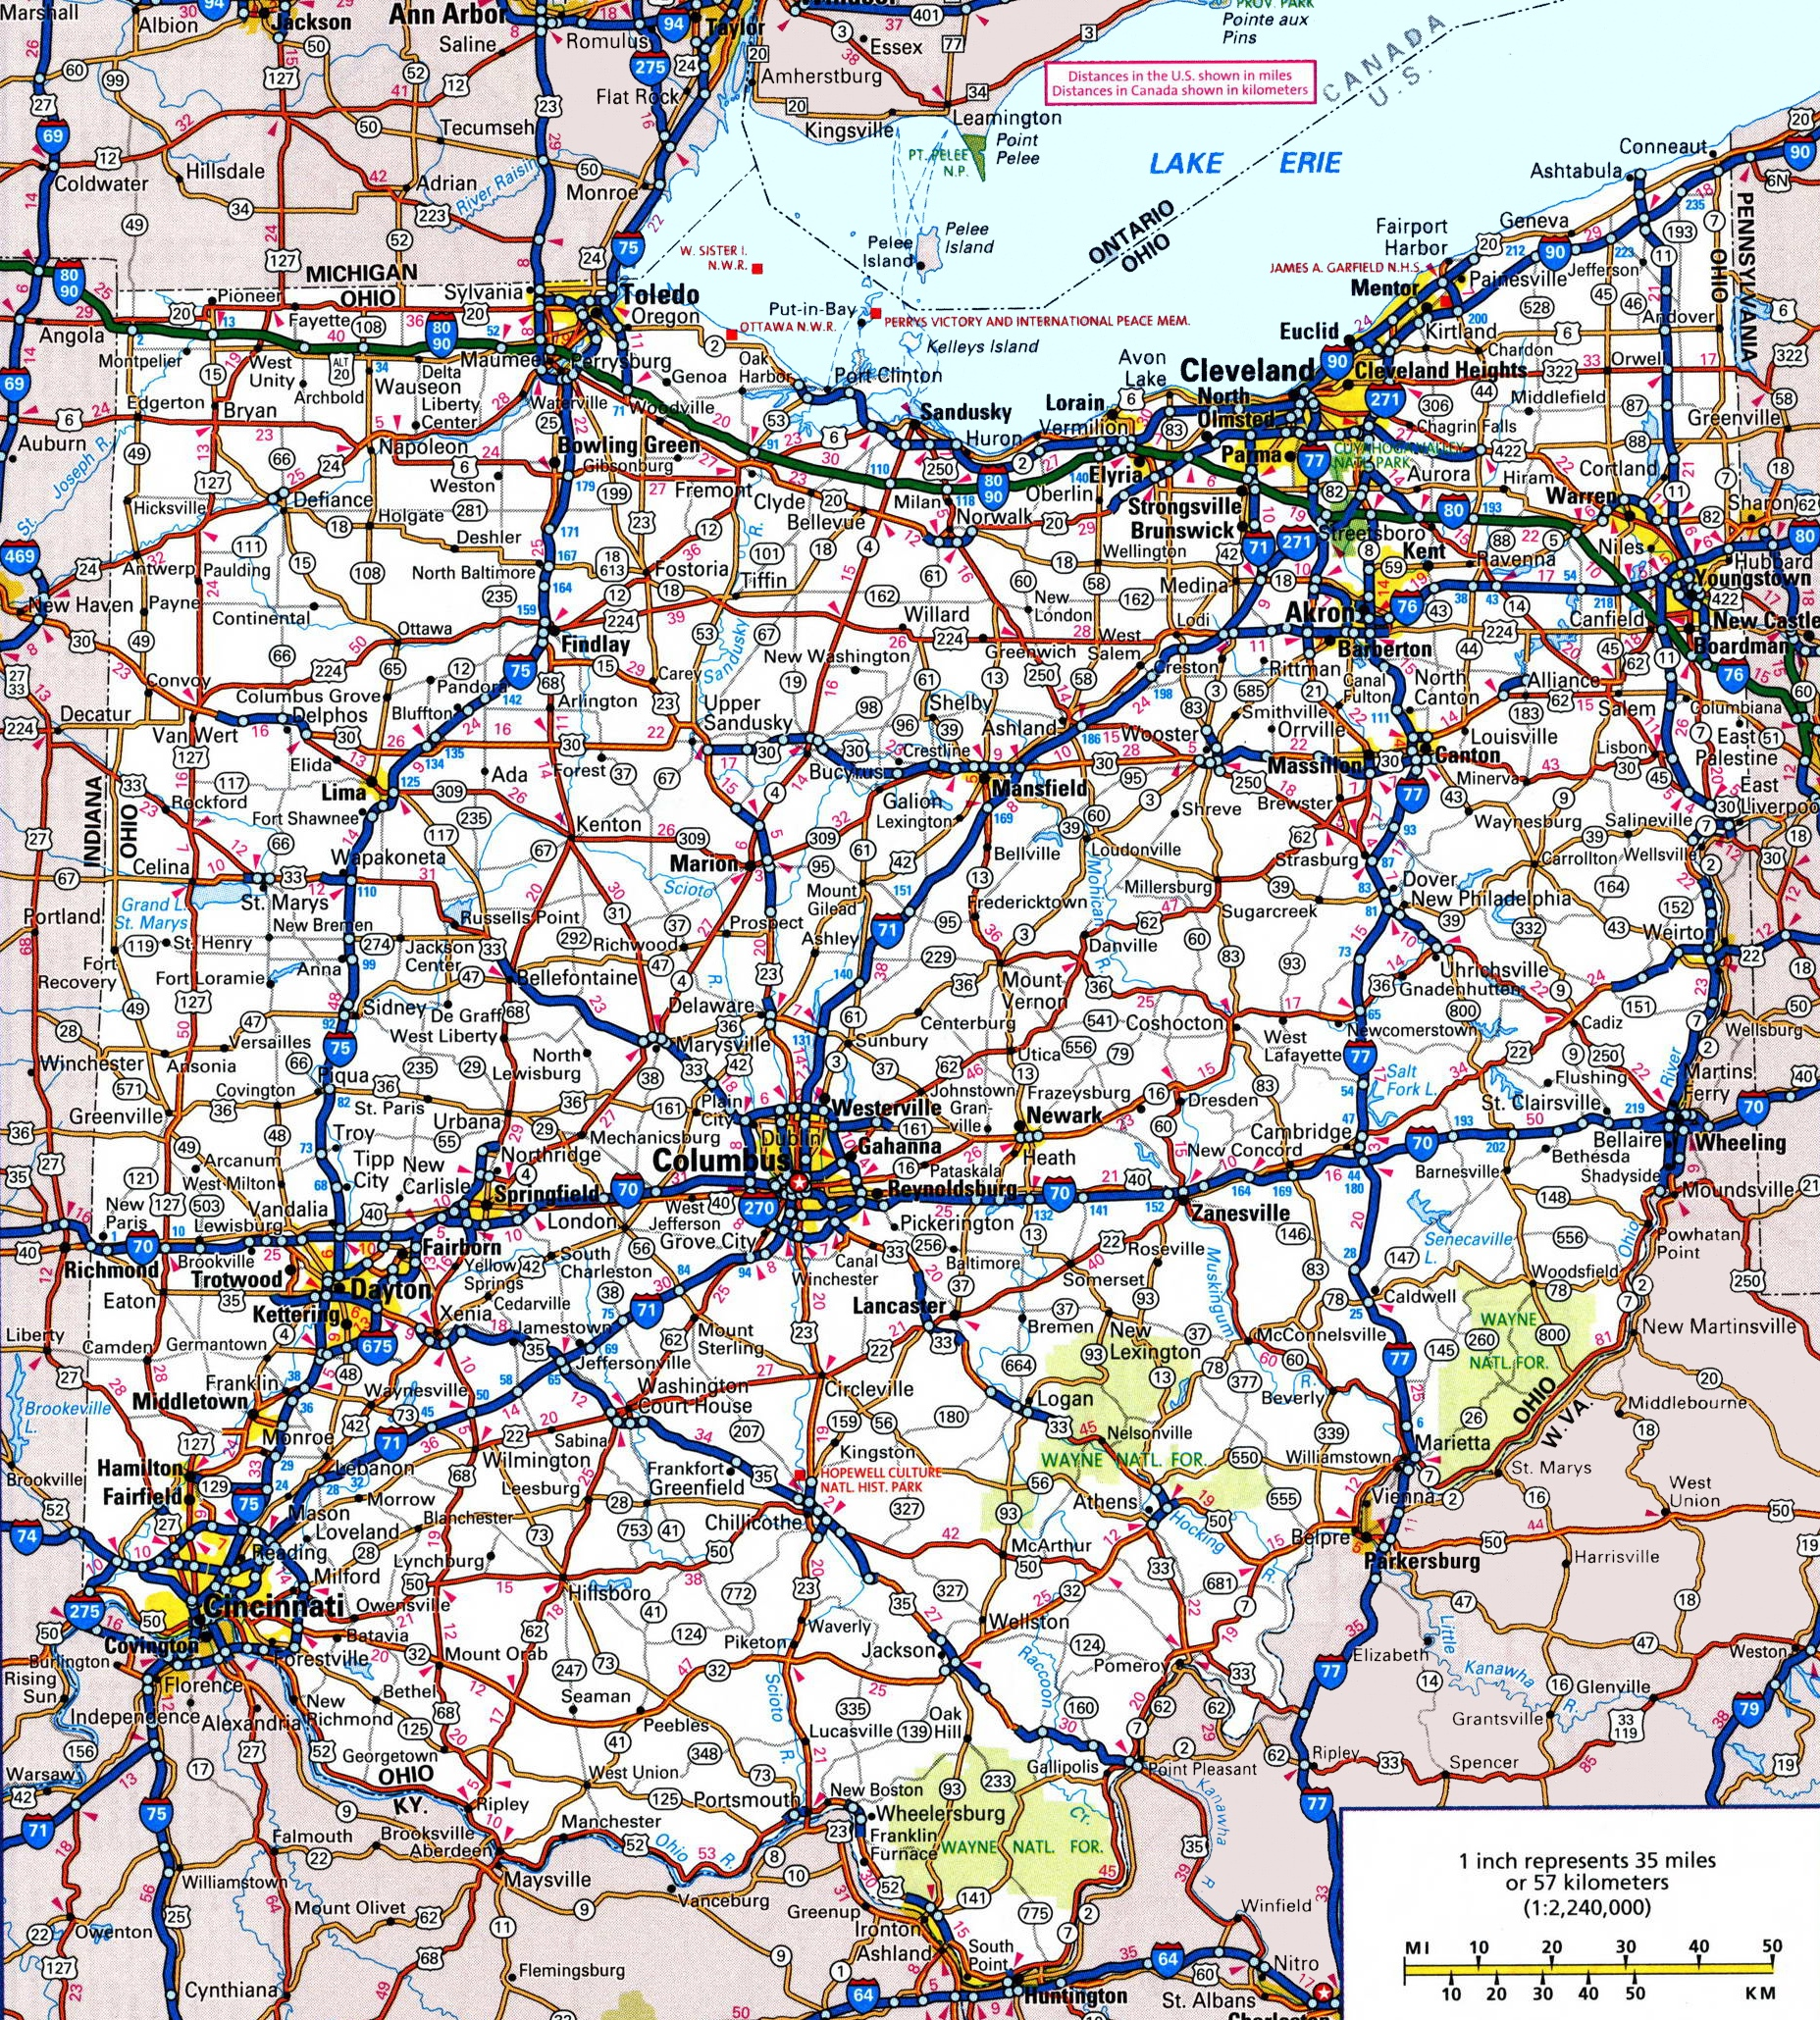 Map Of Ohio Cities Ohio Road Map Ohio Map Ohio State Road Map - Road map usa states